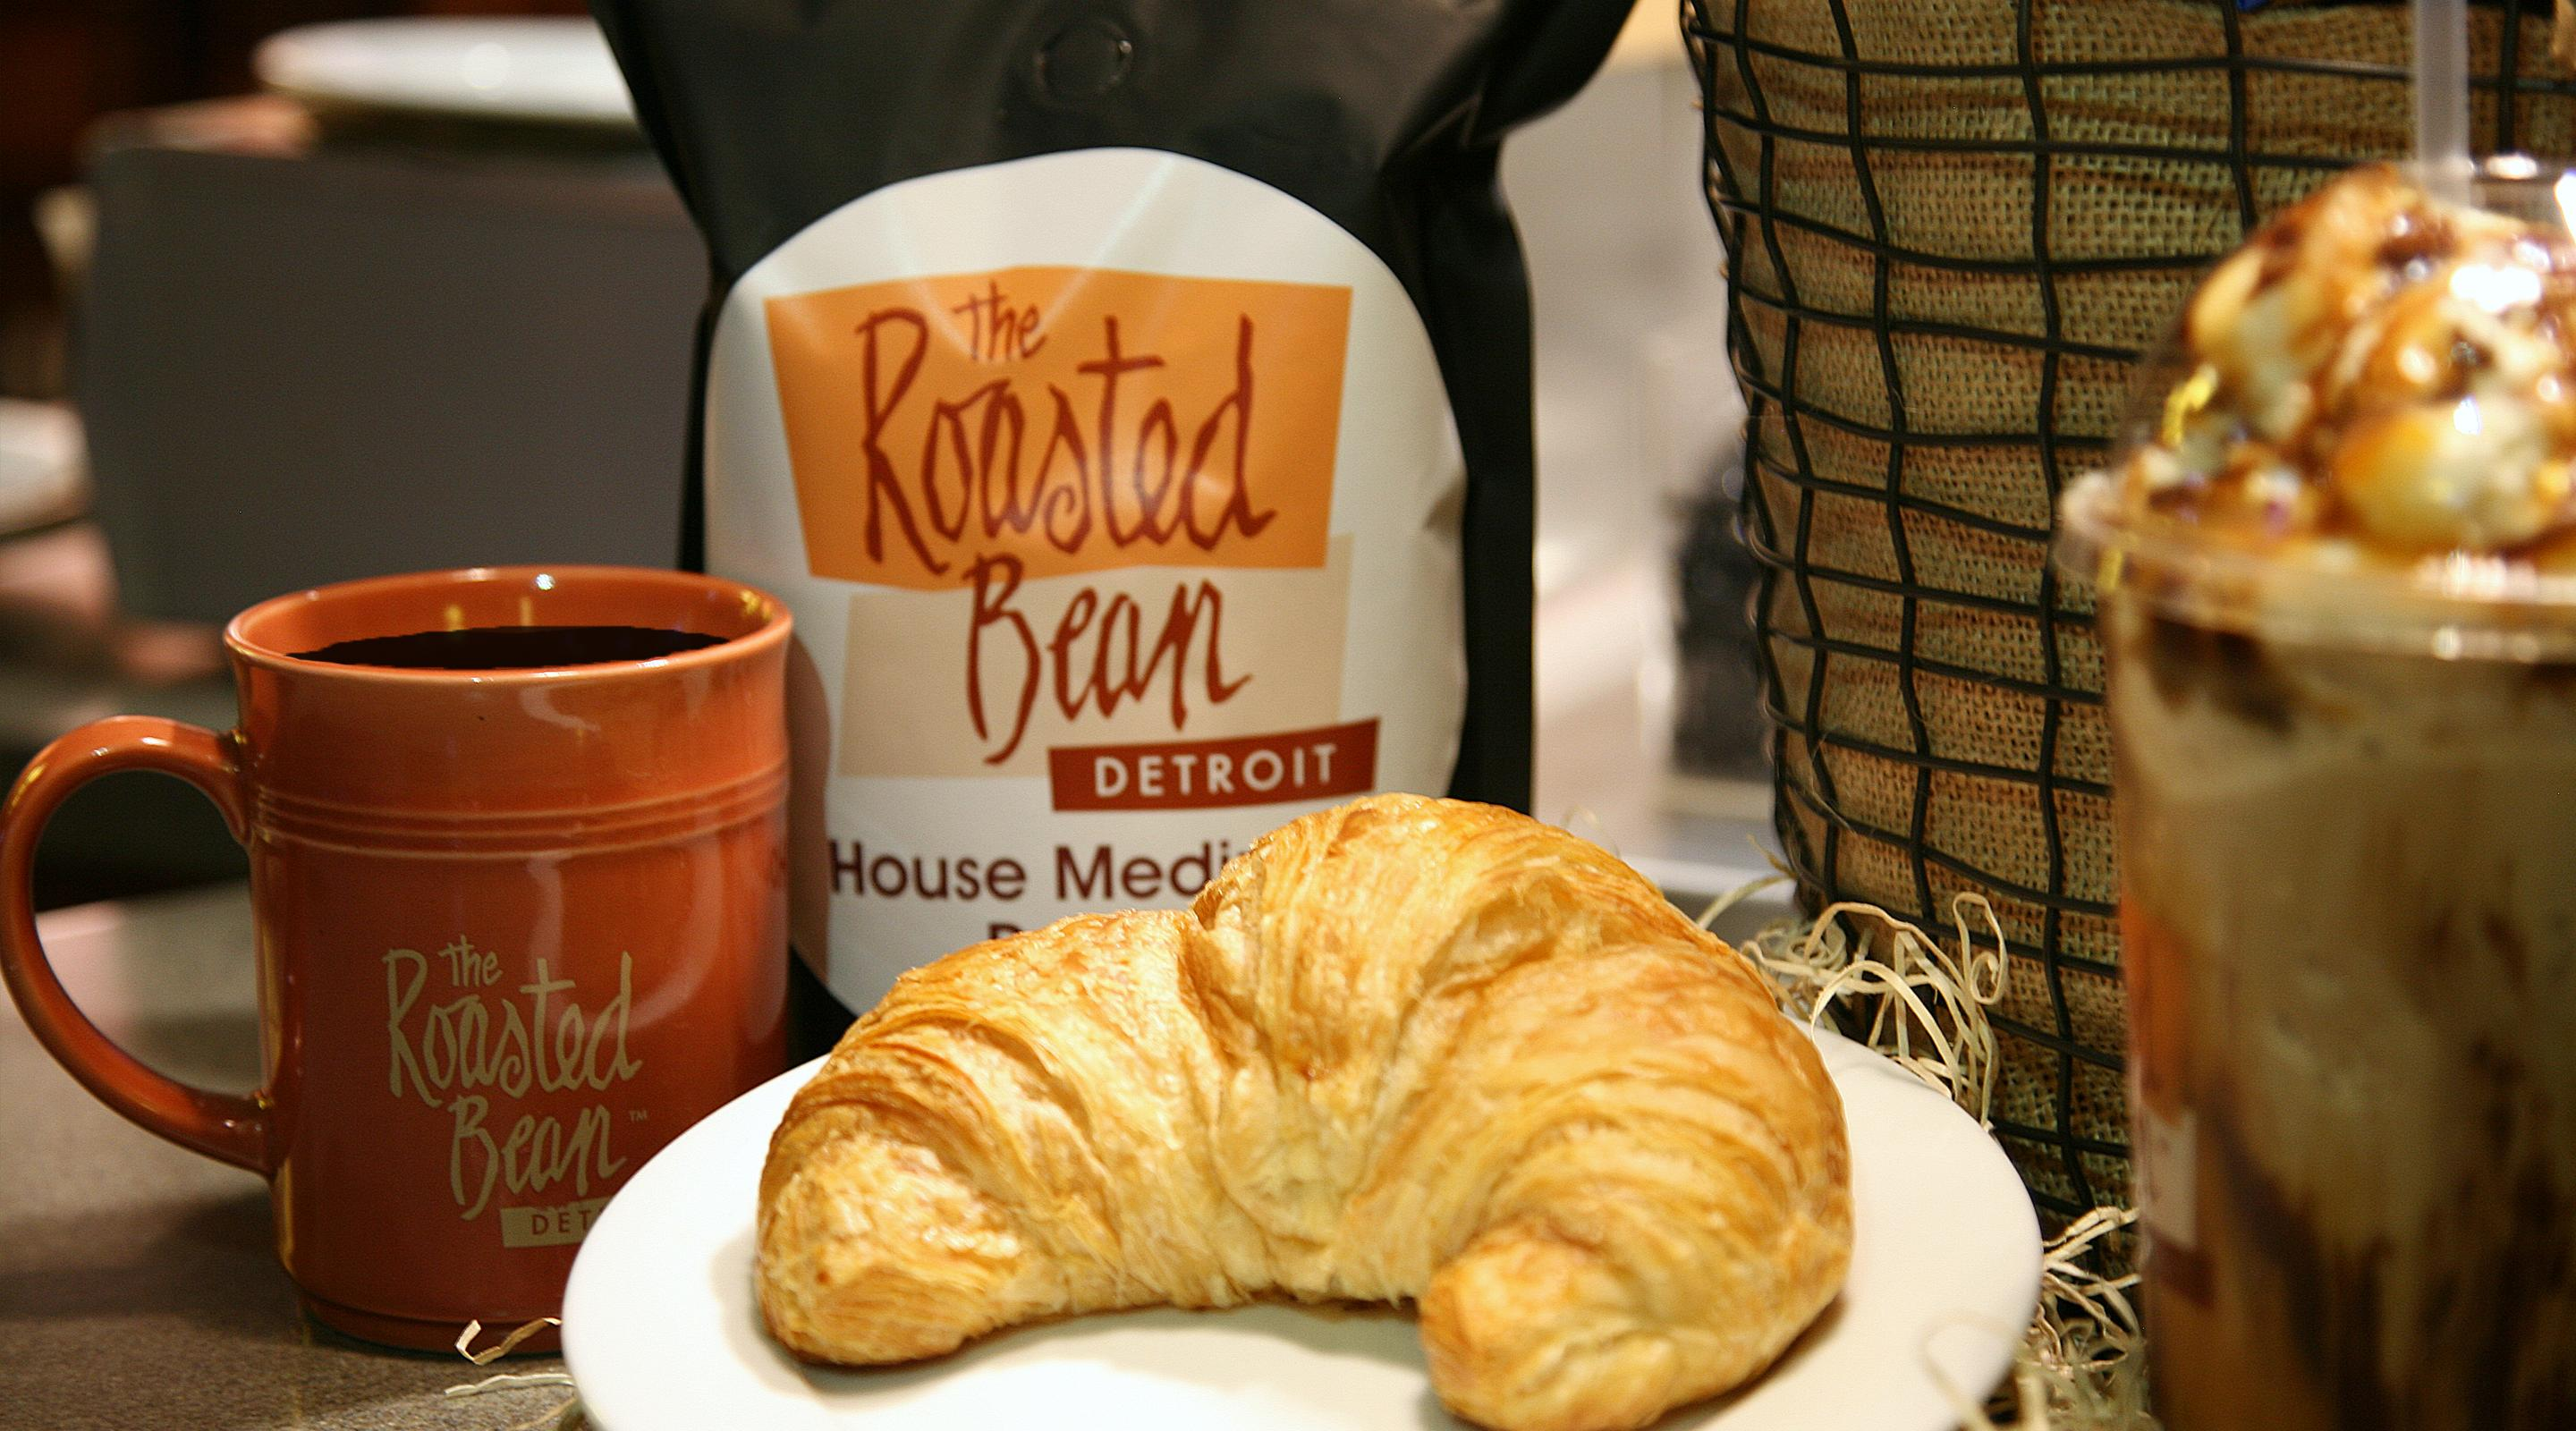 mgm-grand-detroit-dining-the-roasted-bean-croissant